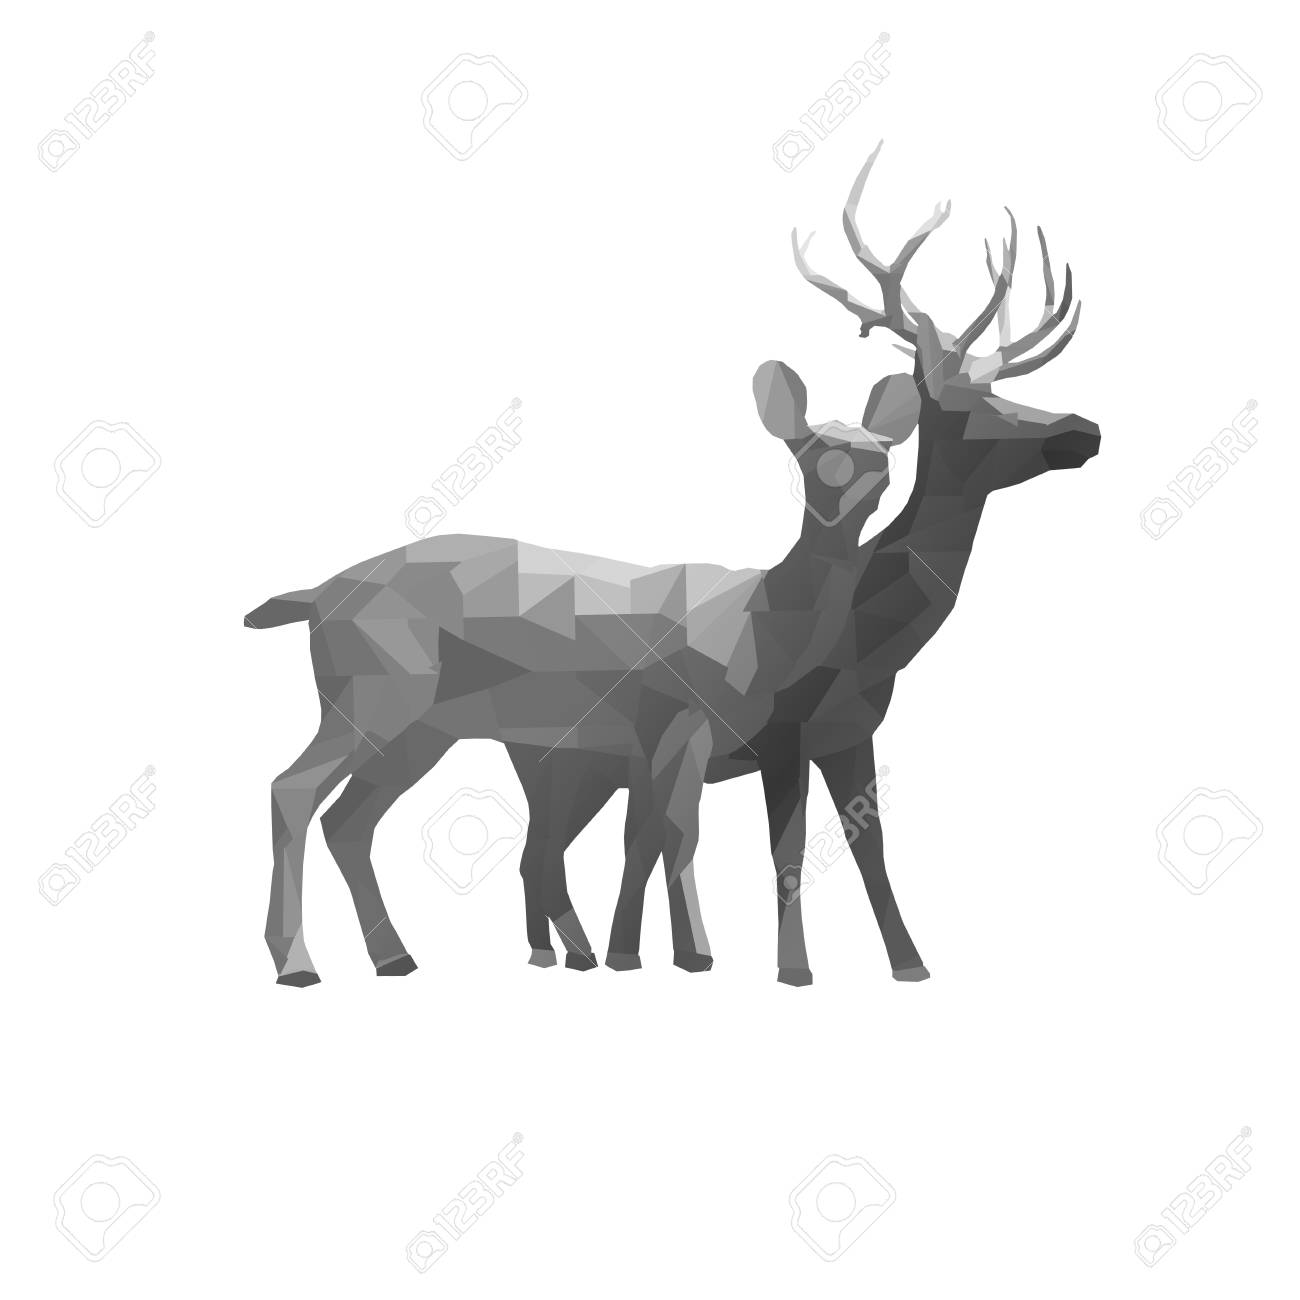 polygon triangle couple deer buck and doe illustration low poly